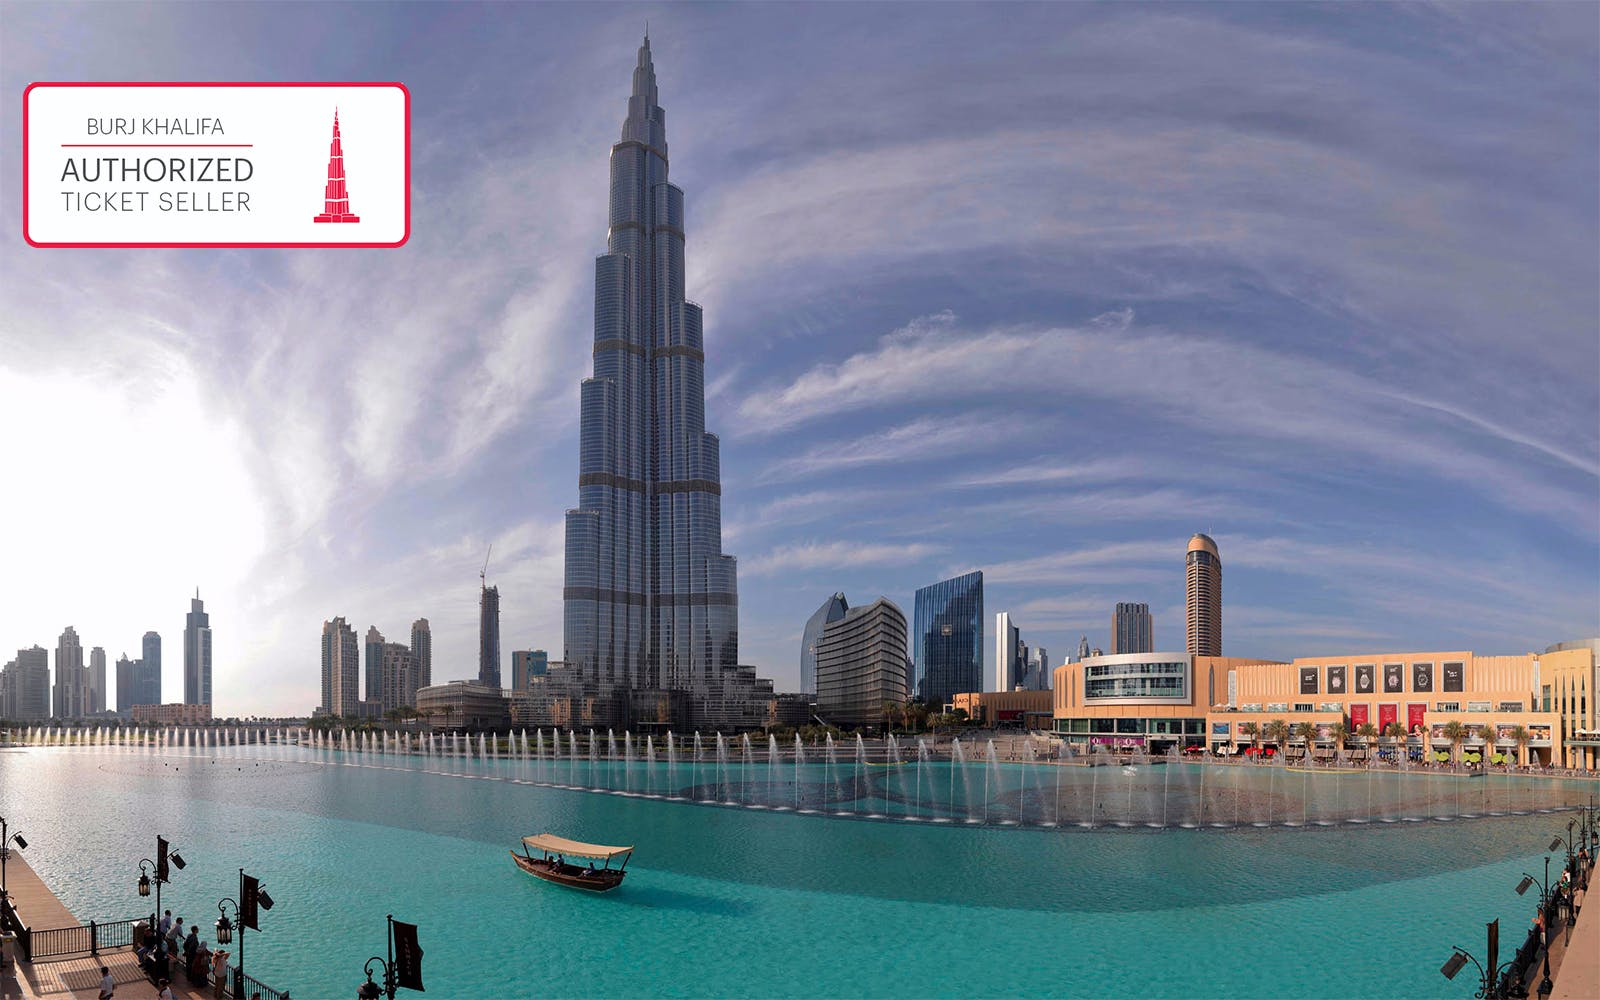 Dubai Fountain Show & Traditional Abra Lake Ride